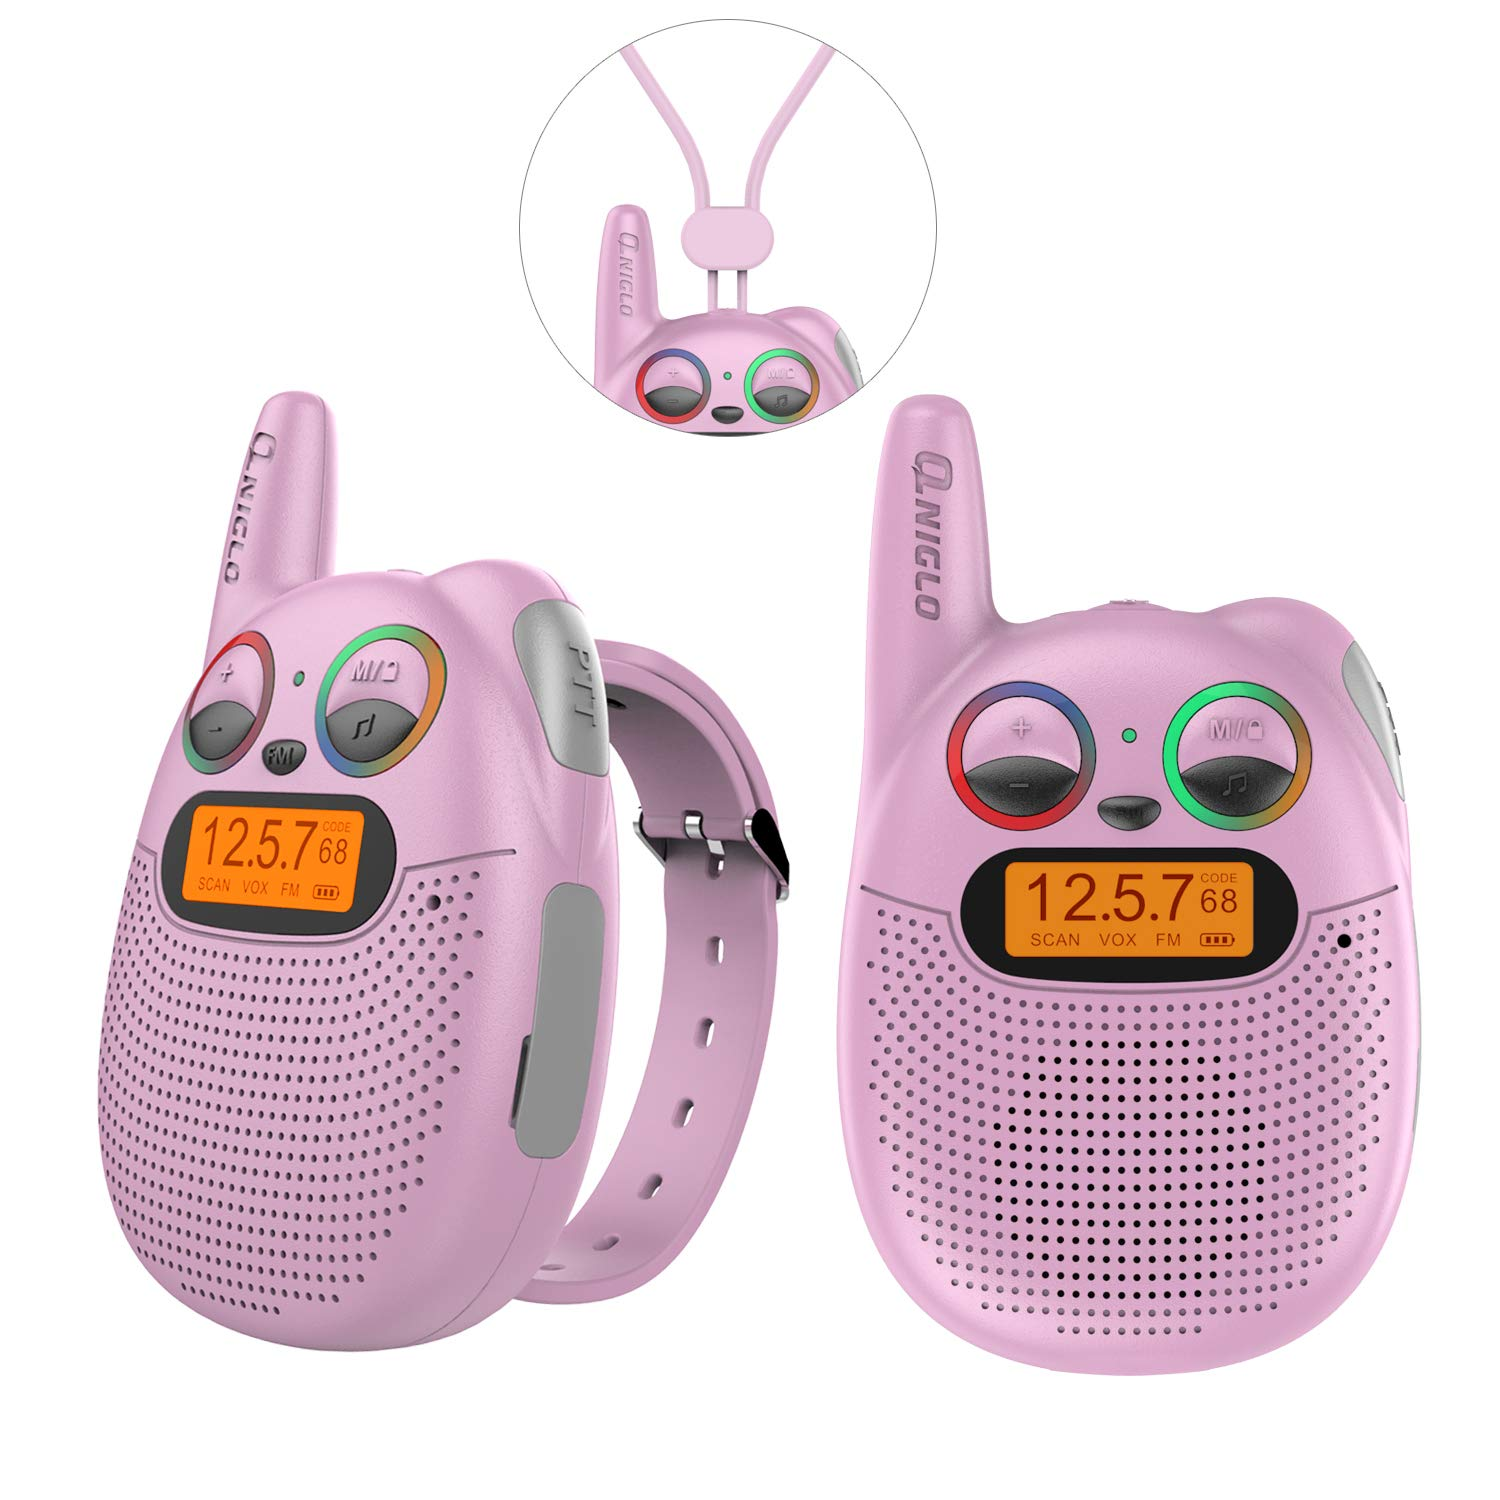 Qniglo FRS Walkie Talkies with FM, Wearable & Rechargeable Walkie Talkies for Kids, up to 2 Miles Kids Walkie Talkies for Bicycle, Hiking, Camping, Running (2 Packs, Pink) by Qniglo (Image #1)